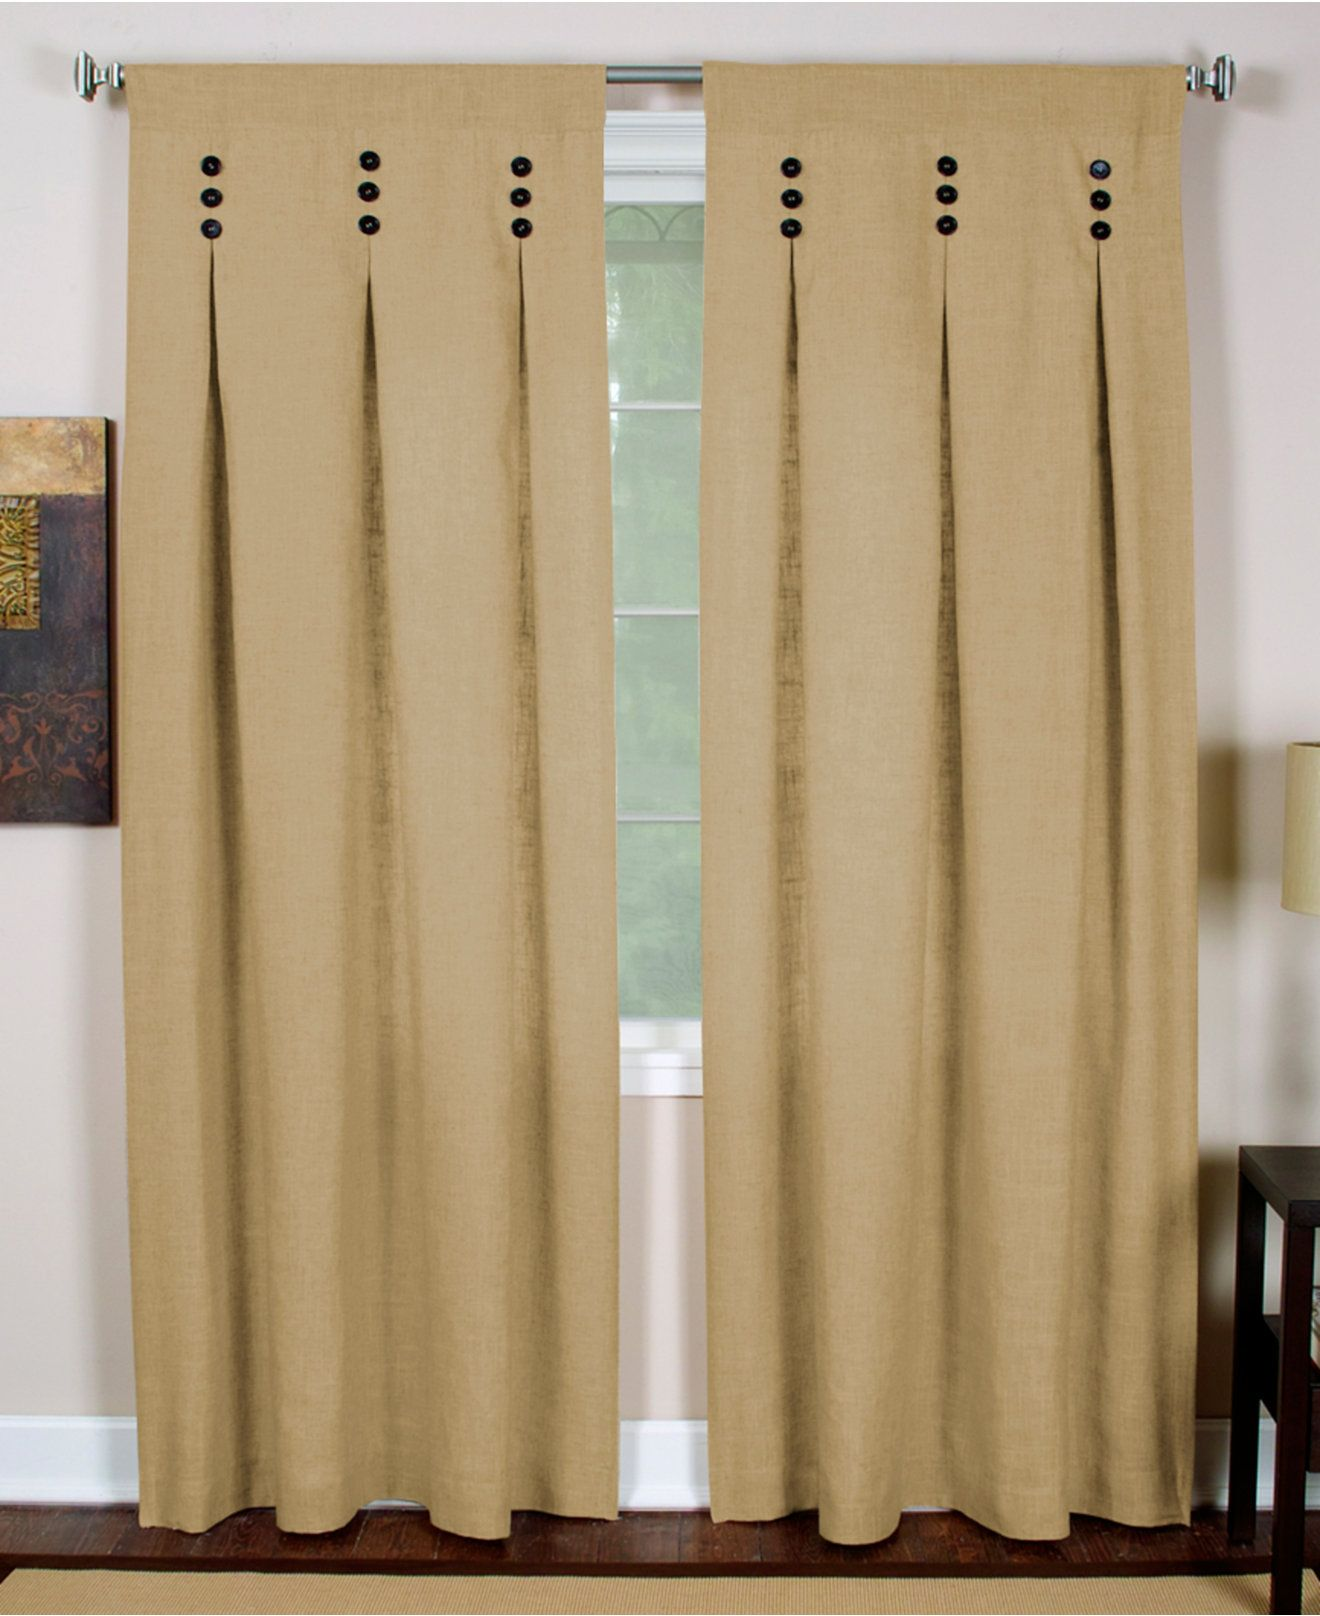 Macys Curtains For Living Room Elrene Murano 26 X 84 Room Darkening Panel For The Window